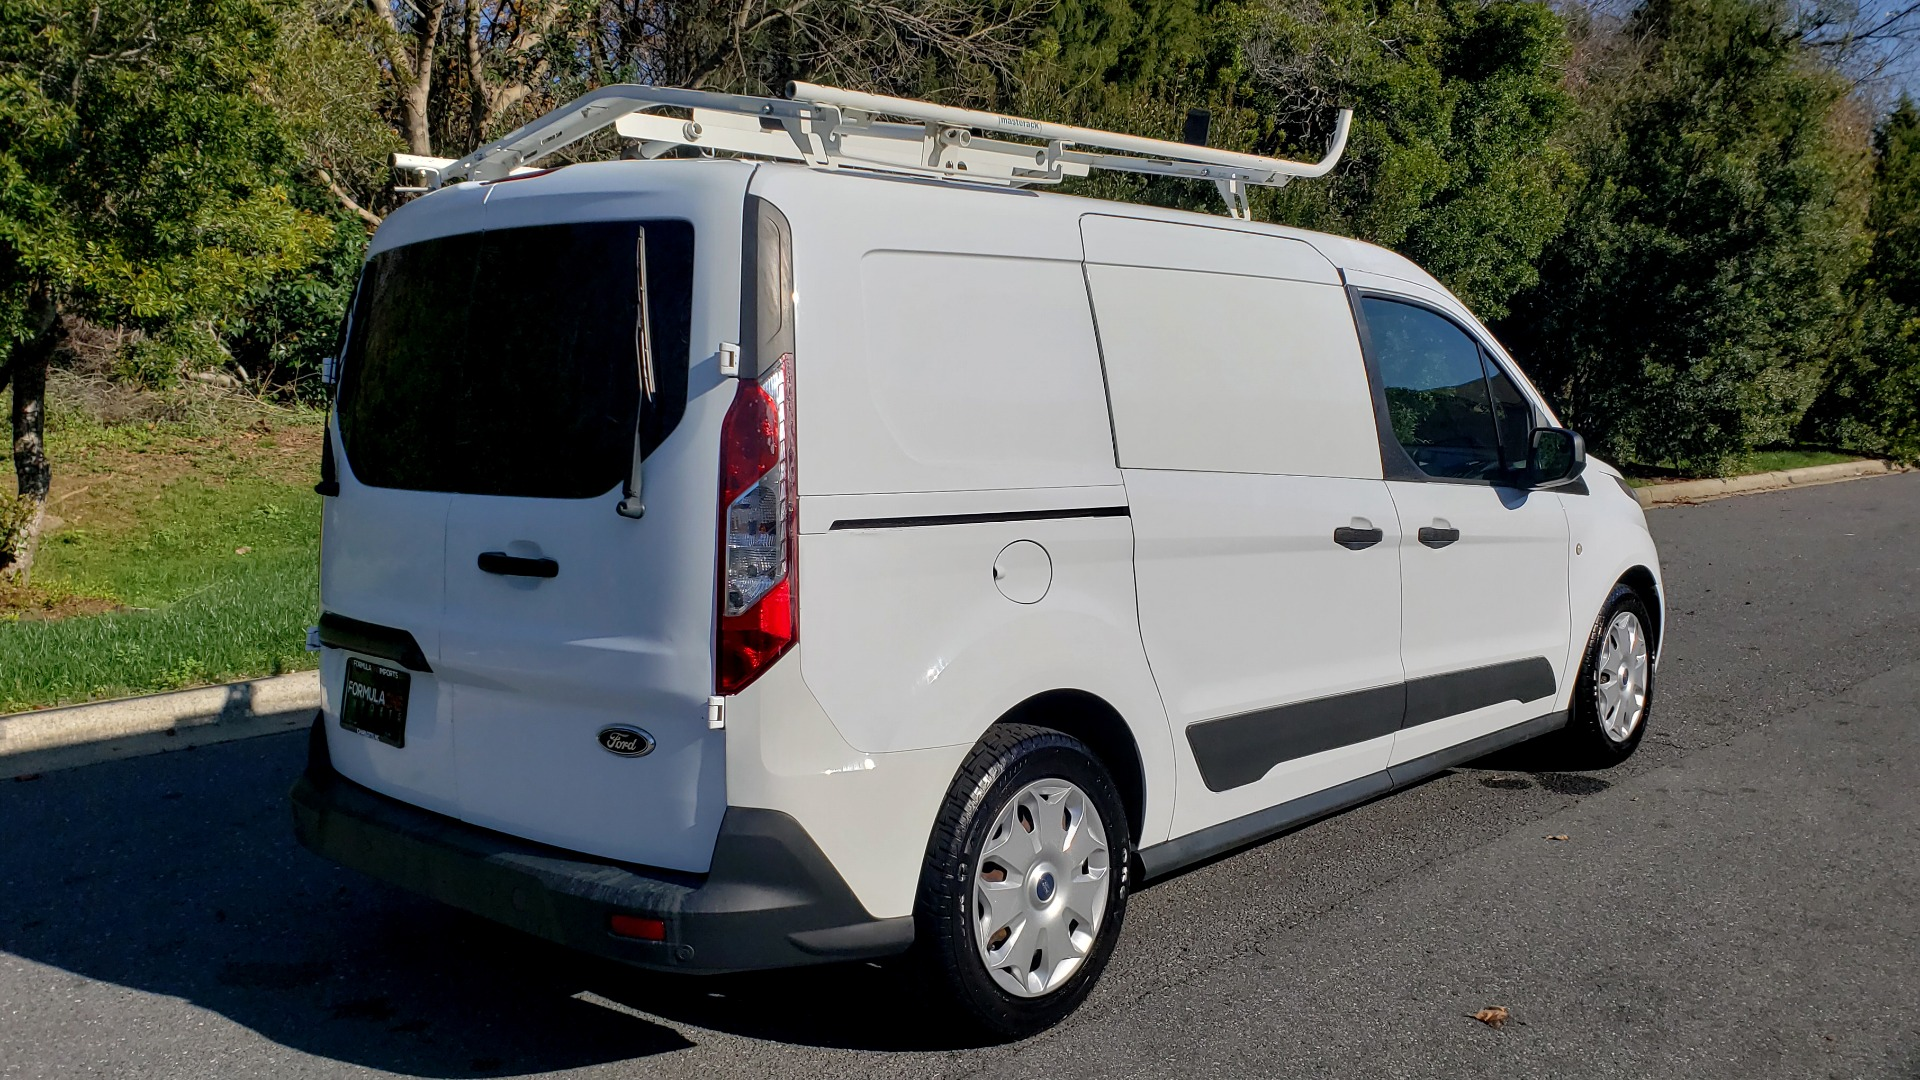 Used 2015 Ford TRANSIT CONNECT XLT CARGO VAN / 121-IN WB / 2.5L 4-CYL / AUTO / REARVIEW / WORK VAN for sale $10,995 at Formula Imports in Charlotte NC 28227 4